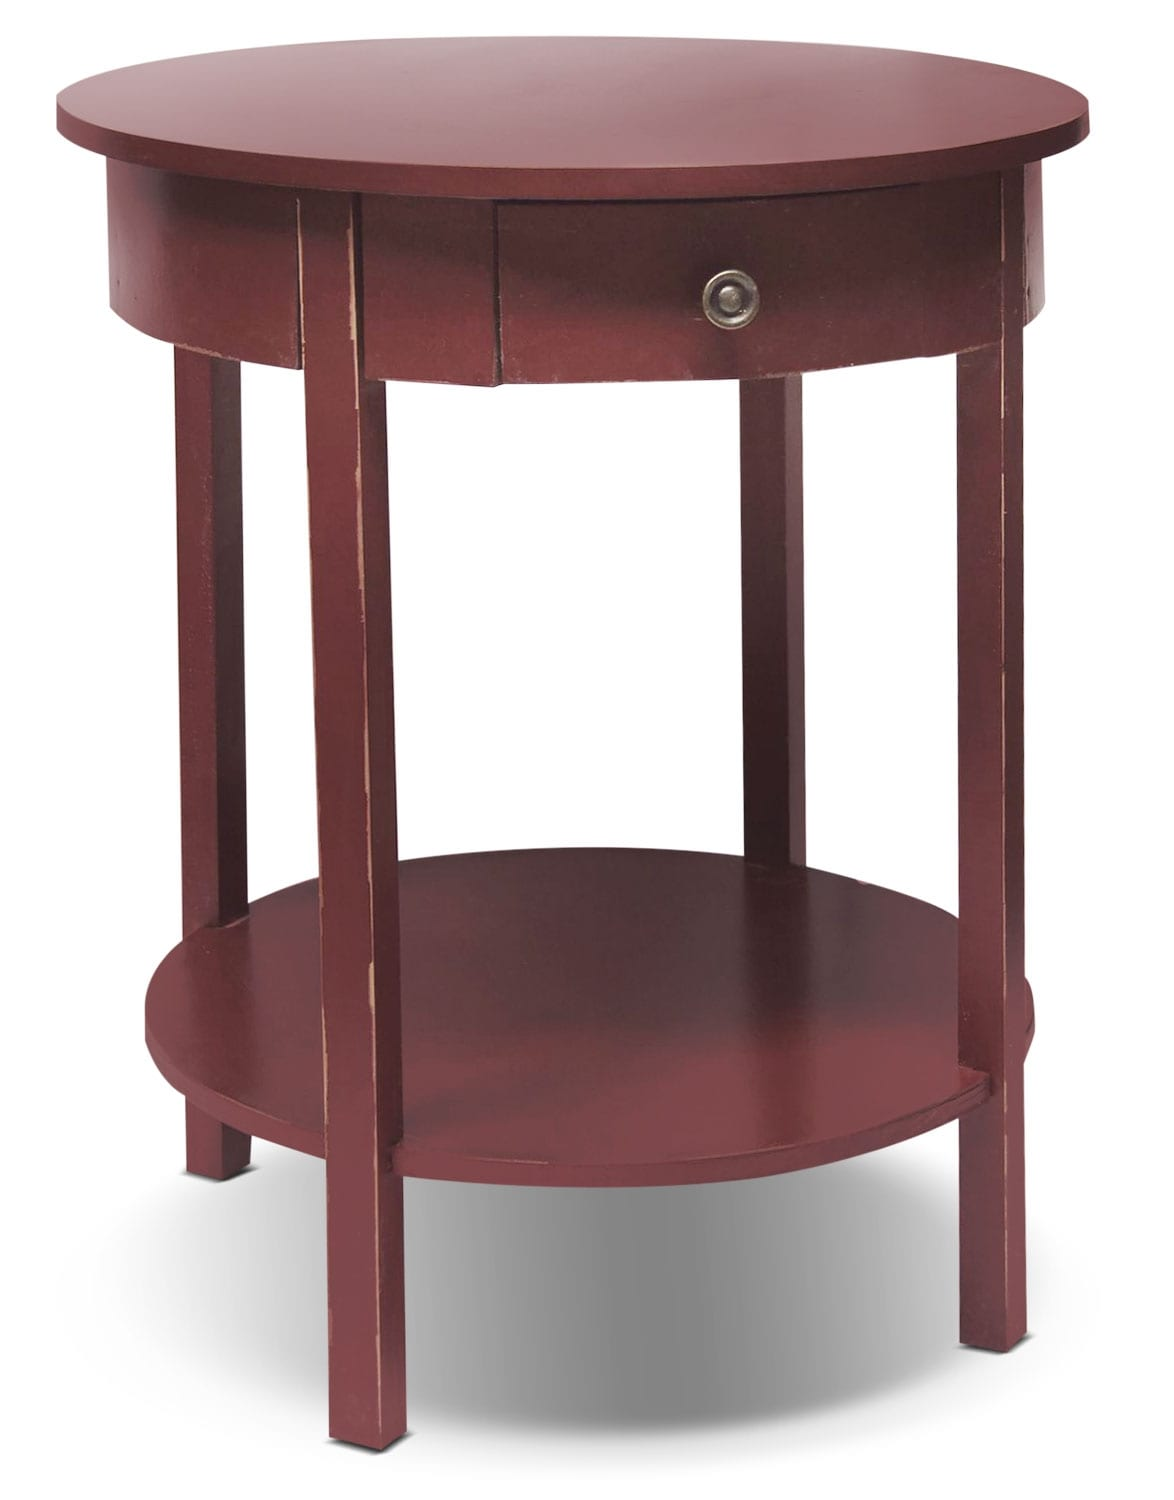 Grafton Accent Table - Antique Red